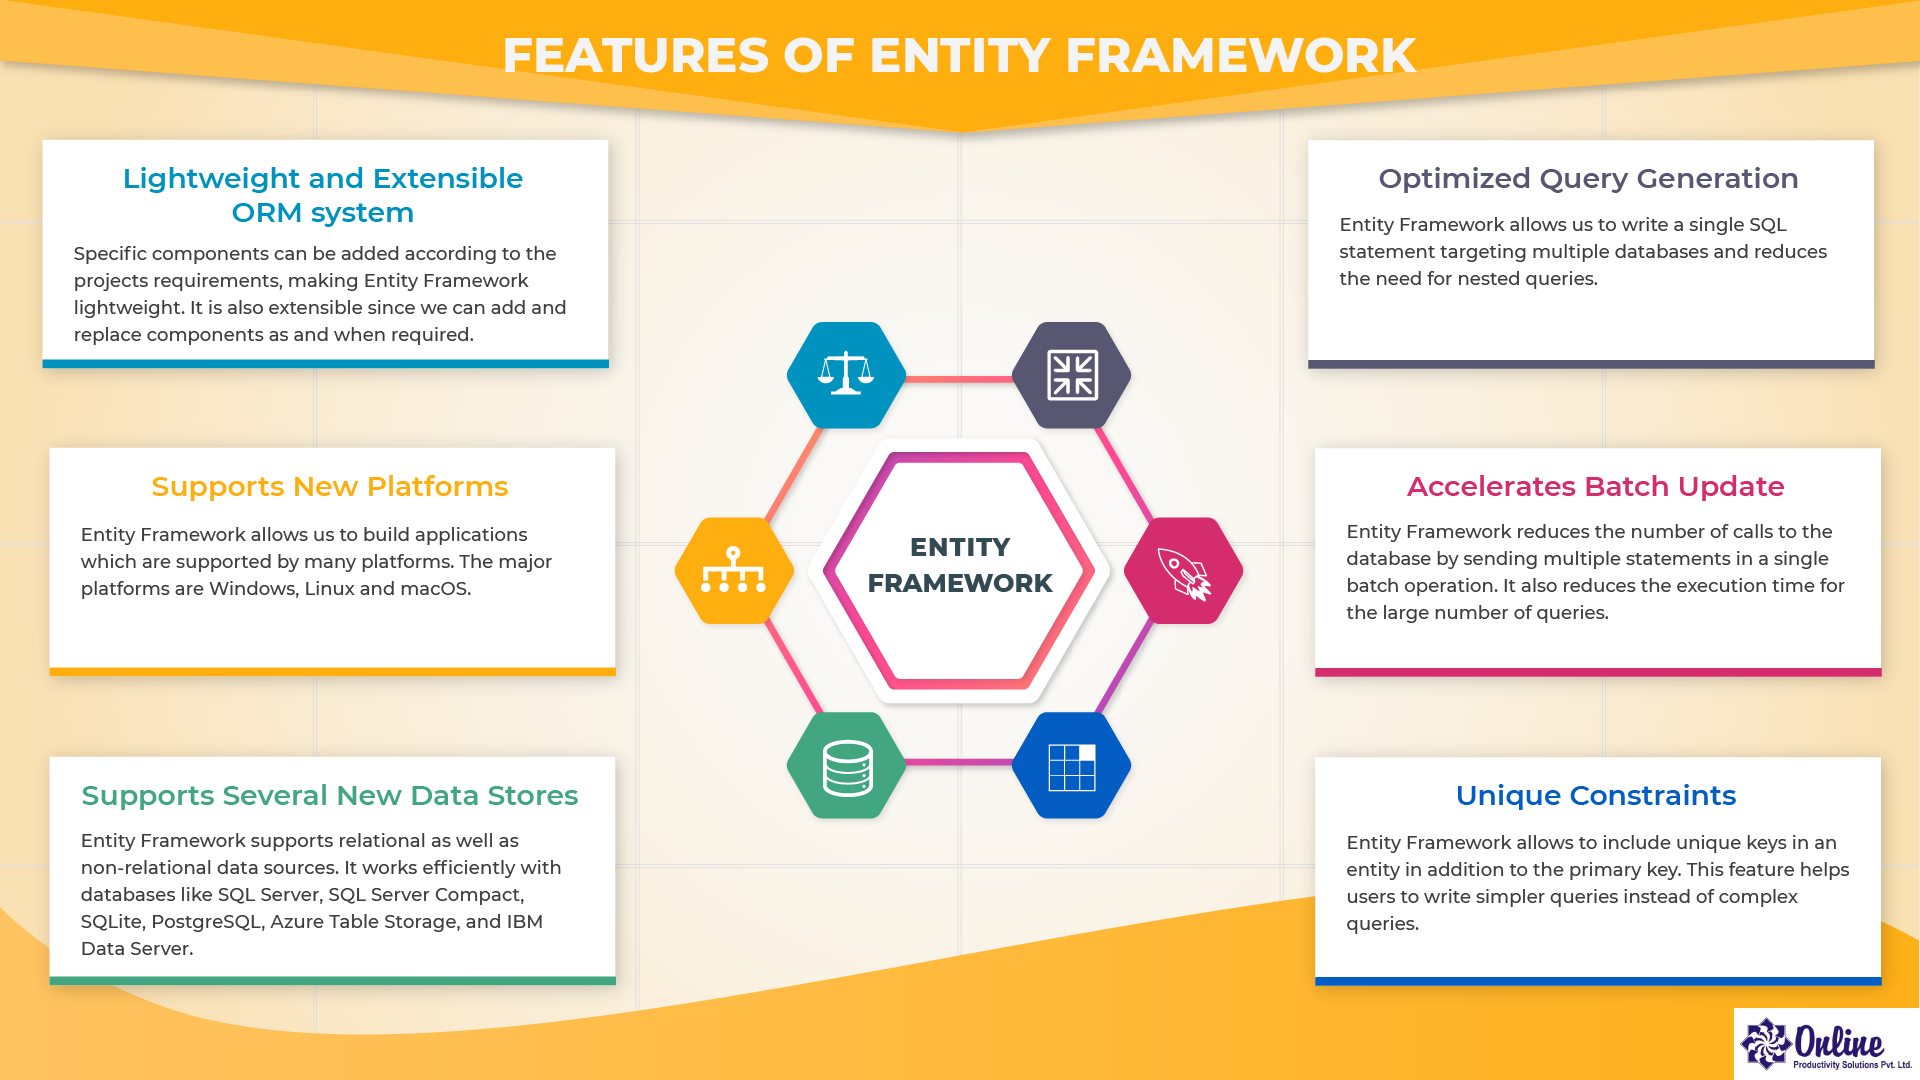 Features of Entity Framework